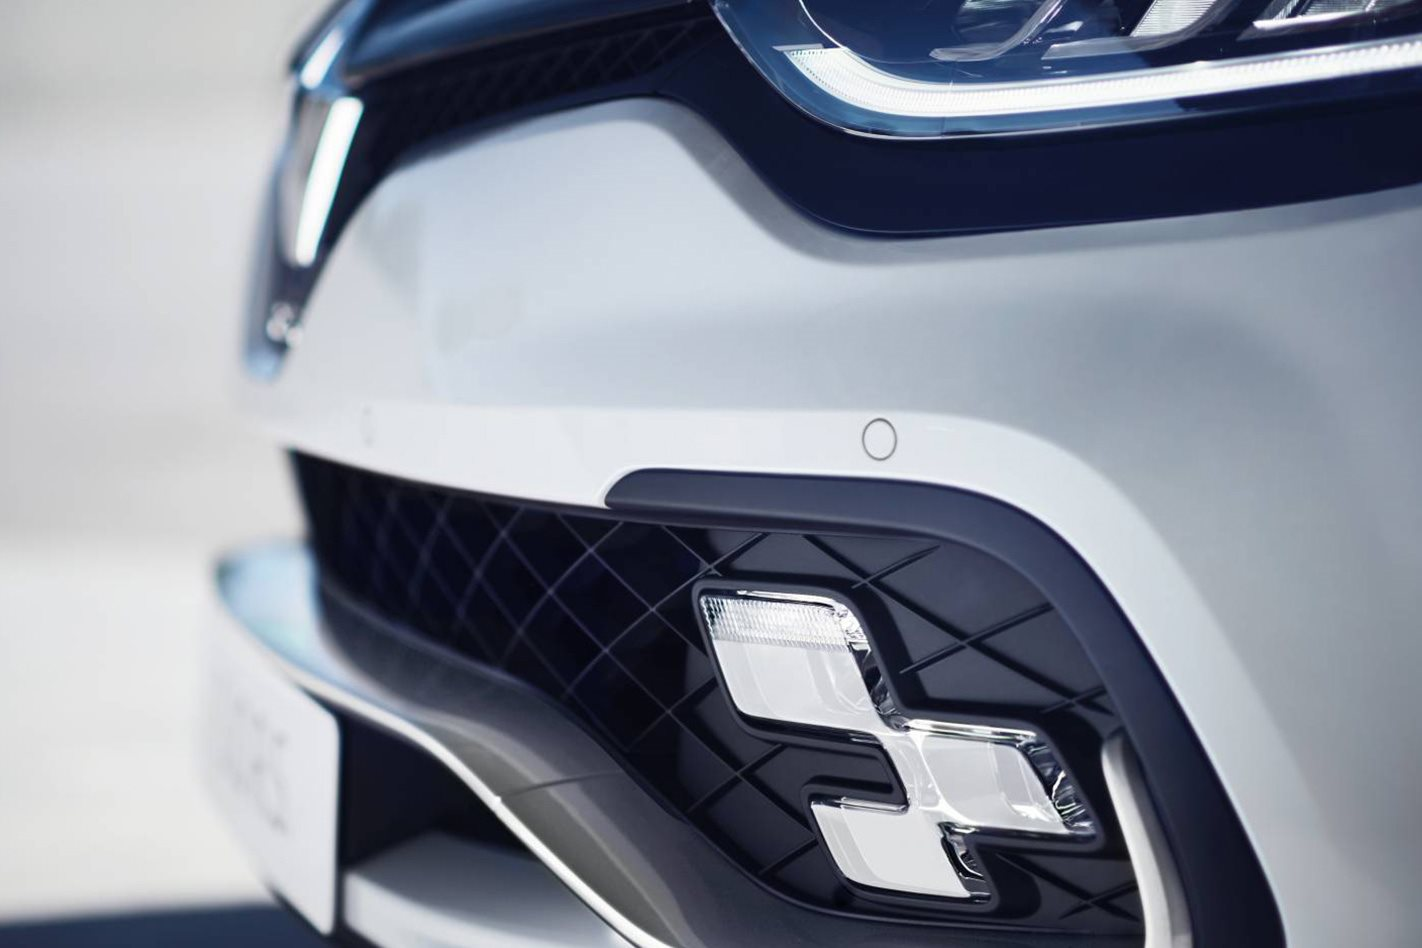 2018 Renault Clio RS Trophy front grill